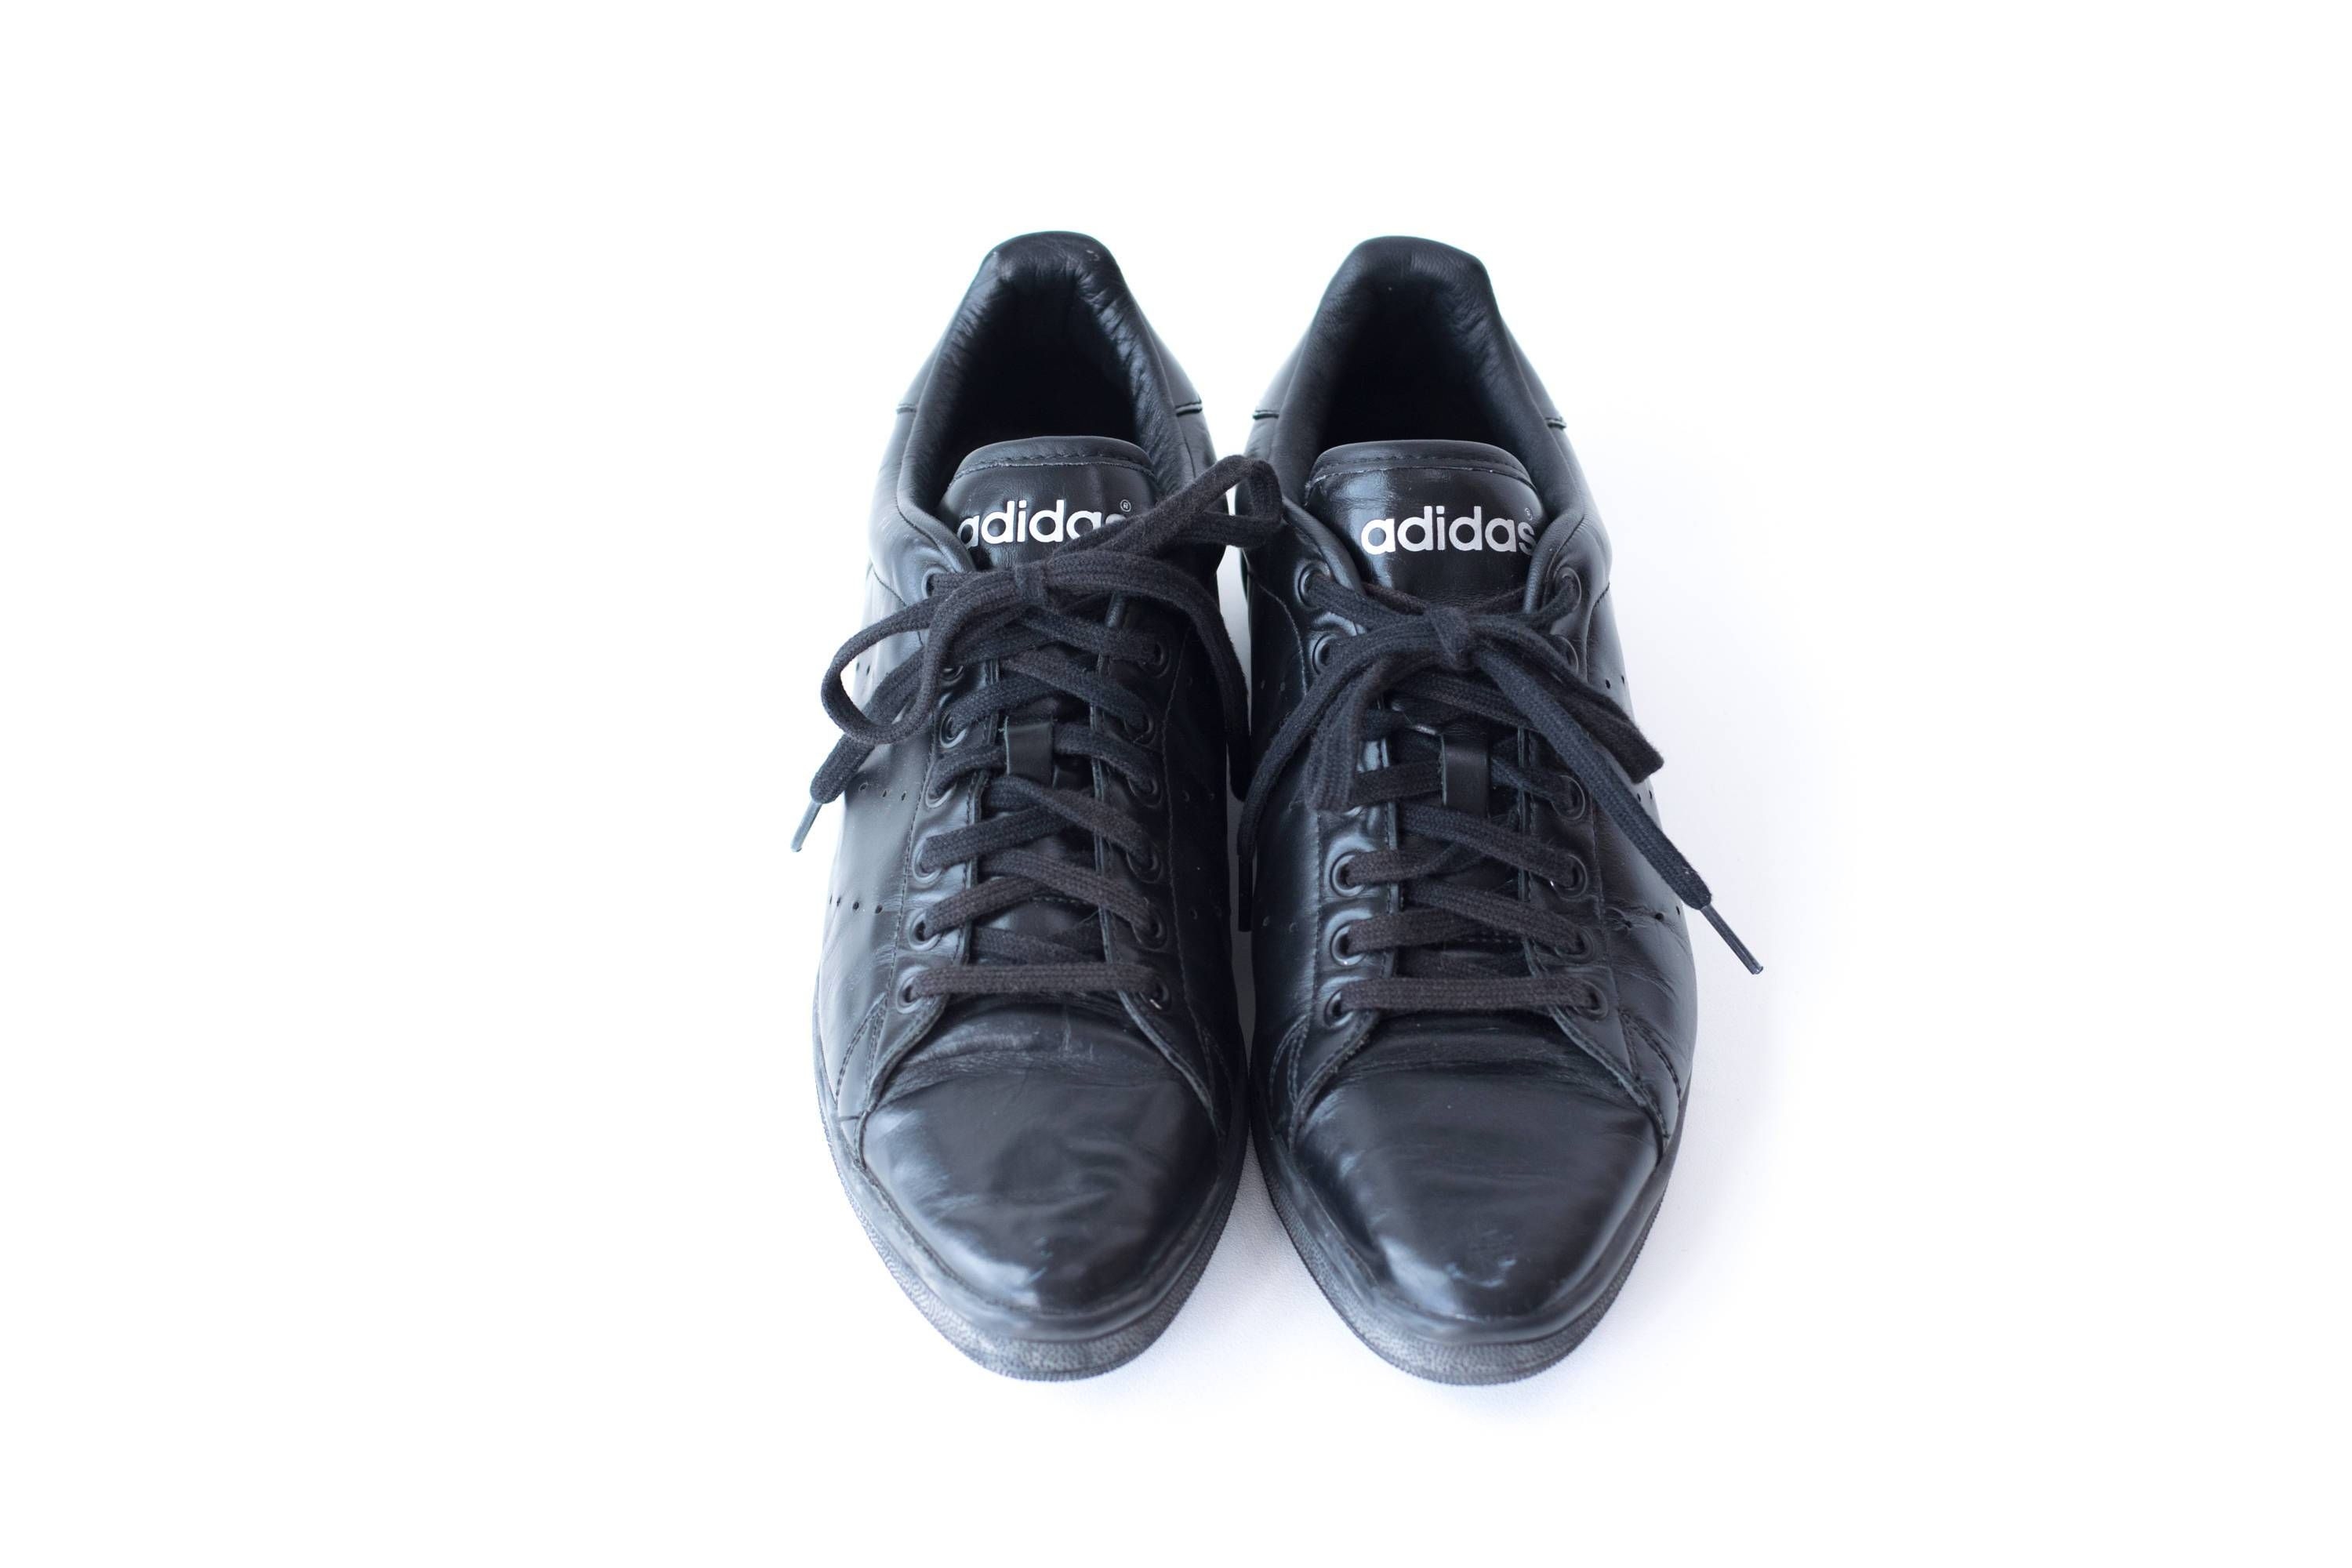 Adidas Leather Sneakers Vintage Black Tennis Shoes Womens Size 10 5 Mens Size 9 5 Black Tennis Shoes Leather Sneakers Sneakers